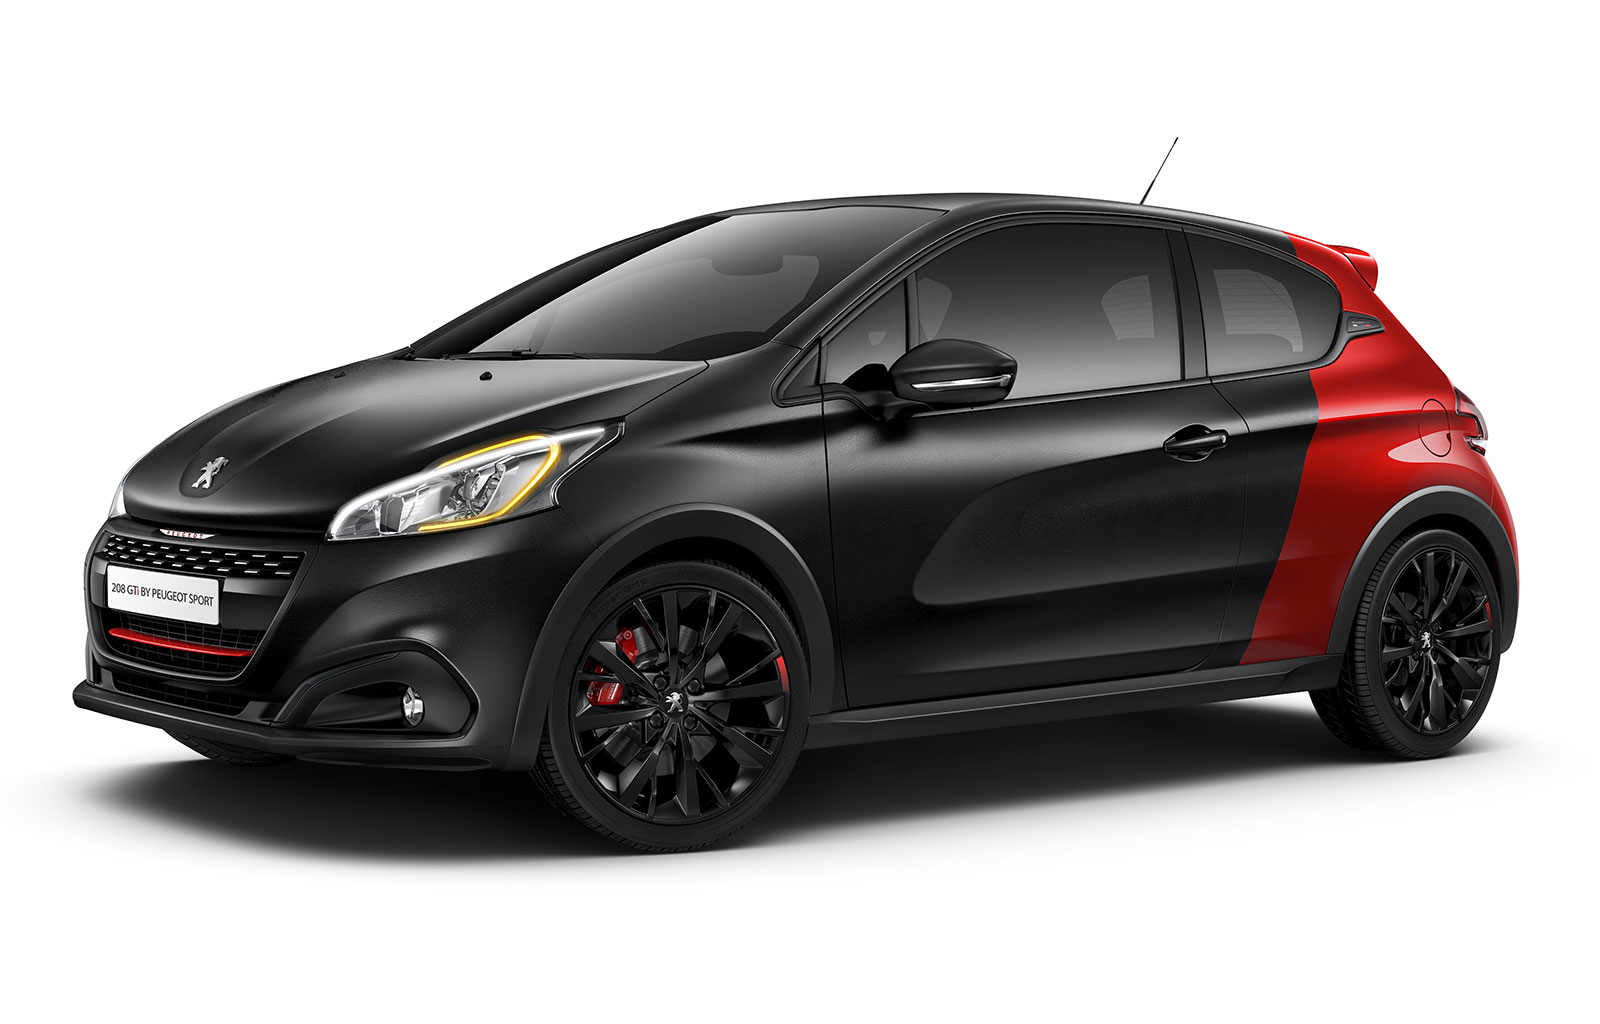 peugeot sport 208 gti rugissage 208 ch pelage noir. Black Bedroom Furniture Sets. Home Design Ideas